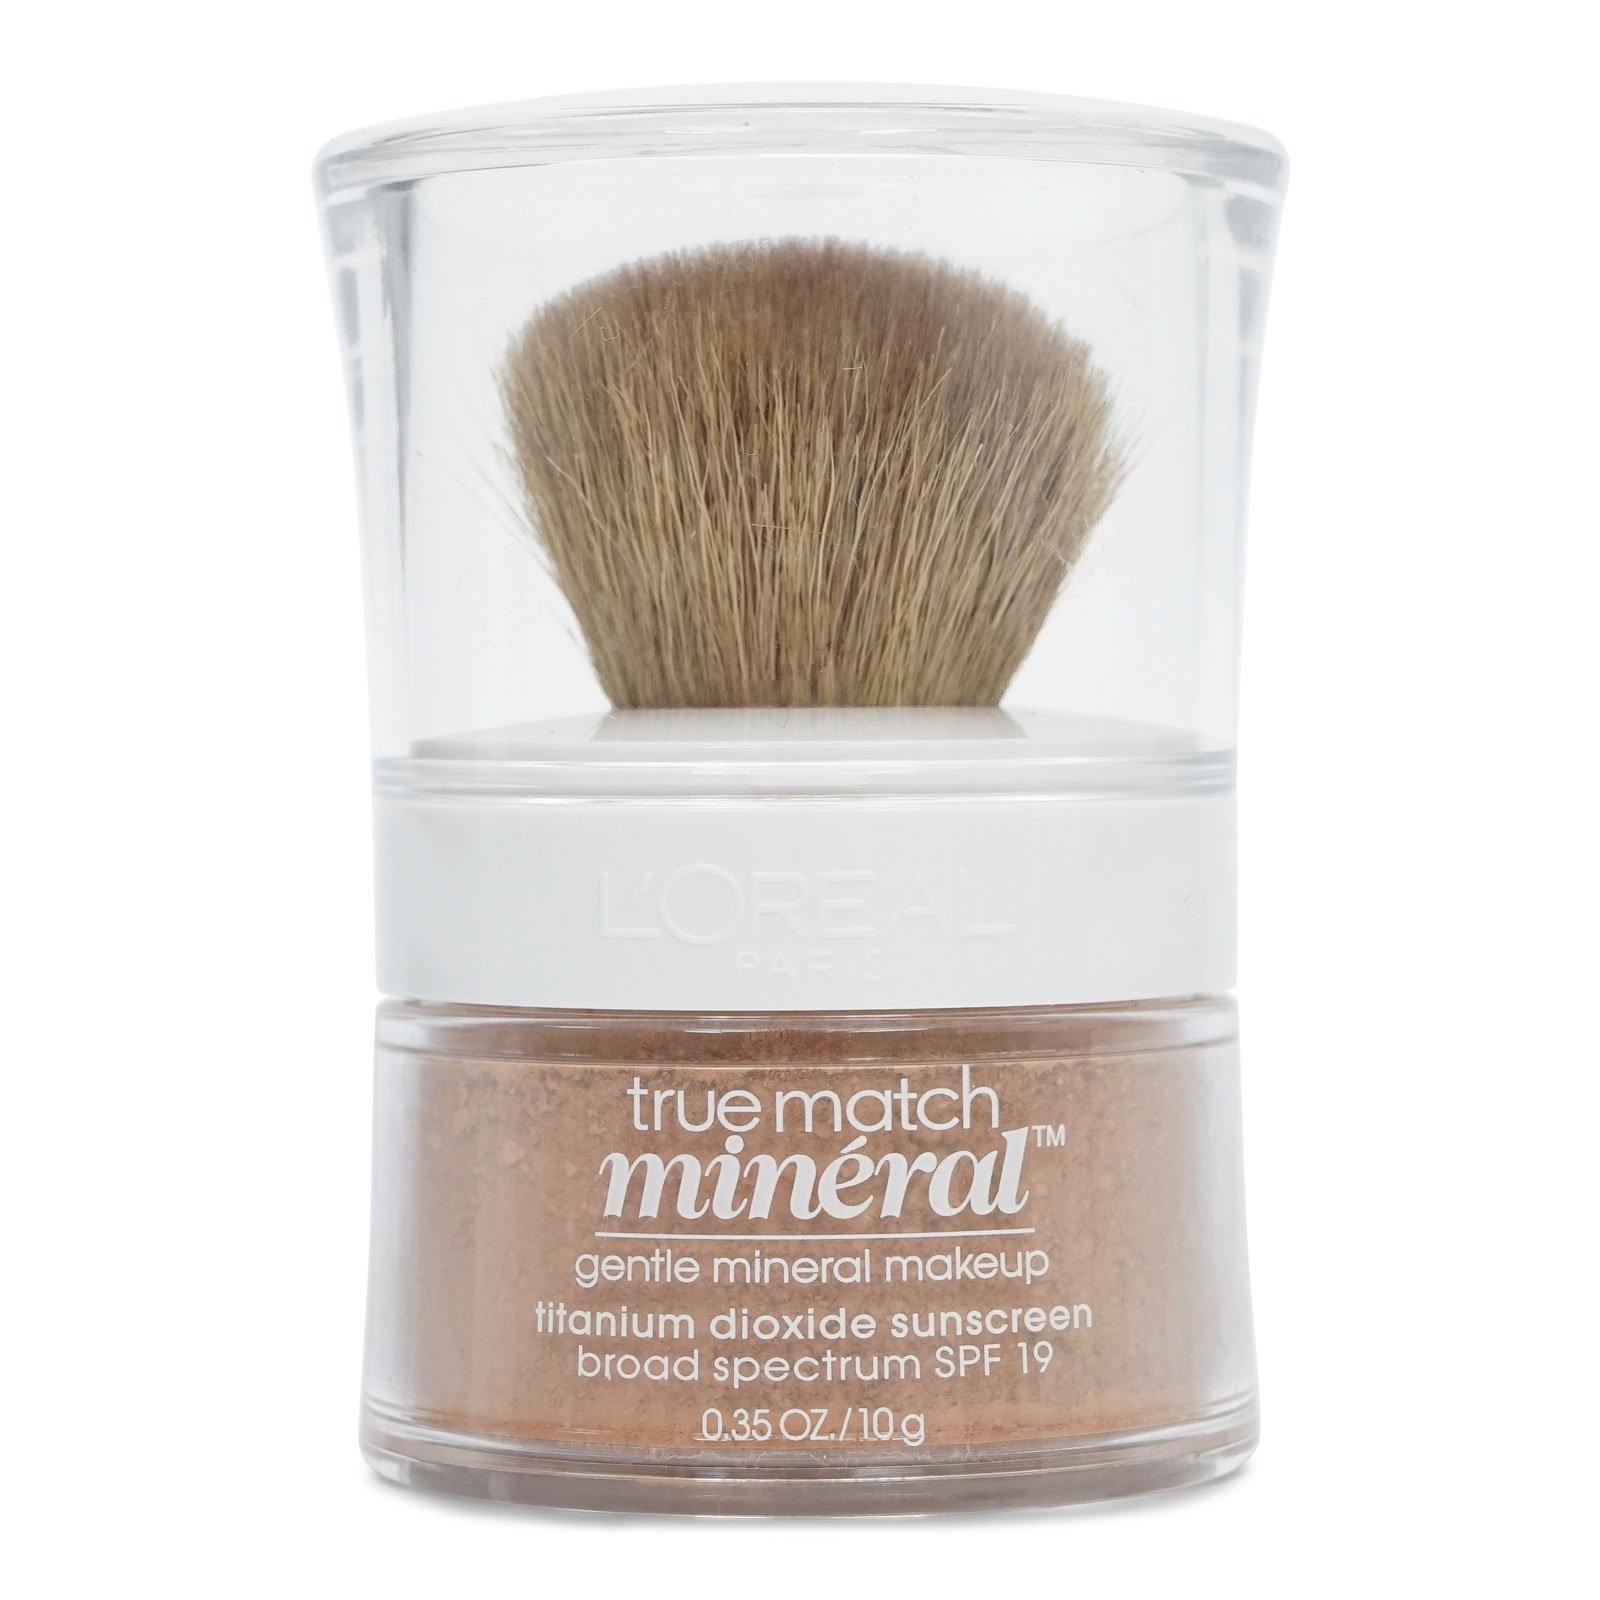 L'Oreal True match gentle mineral powder makeup - Honey Beige (24/cs)